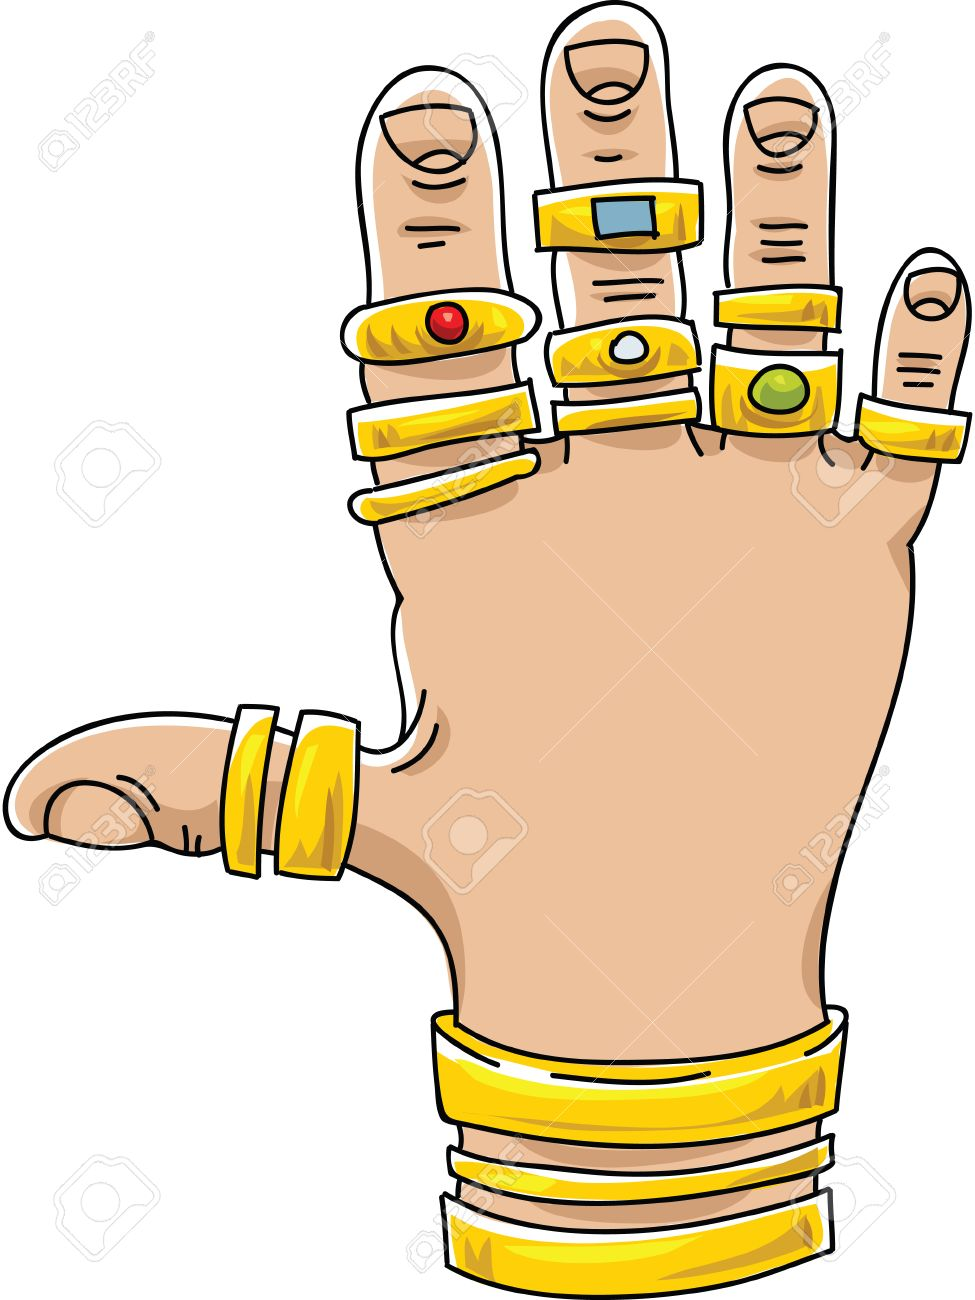 a cartoon hand covered with gold rings and bracelets royalty free